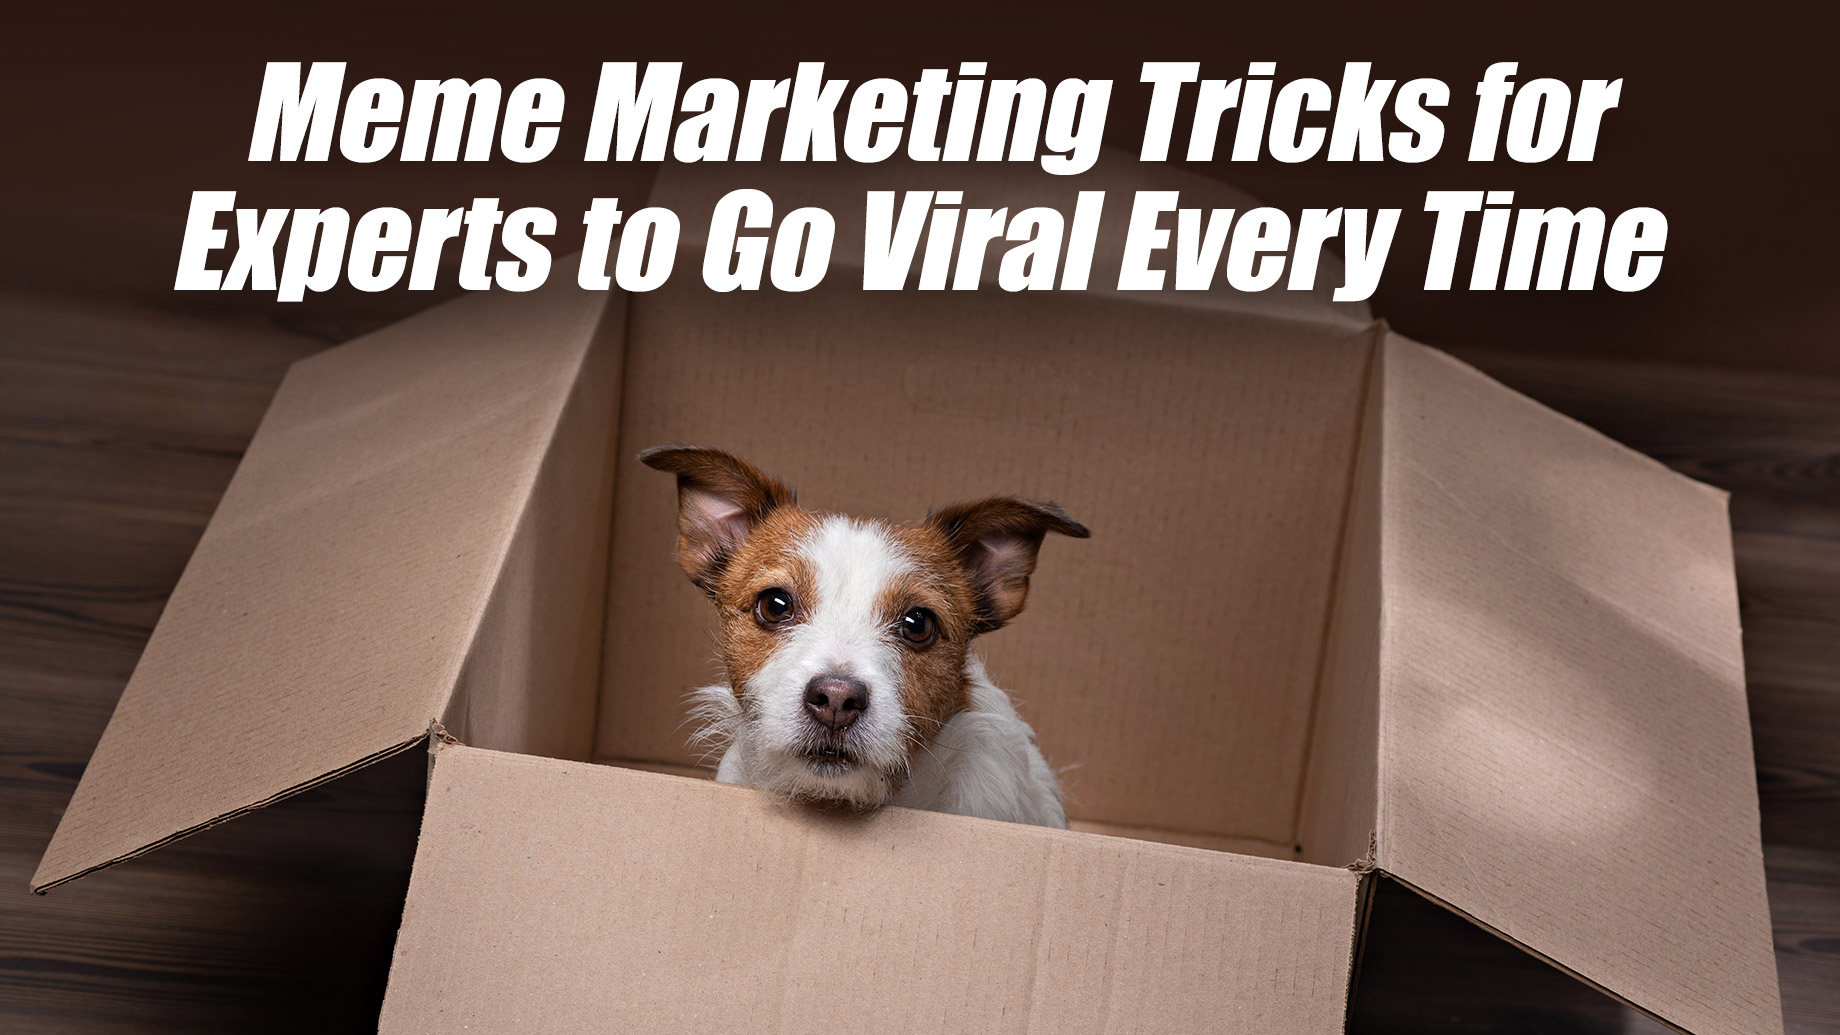 Meme Marketing Tricks for Experts to Go Viral Every Time